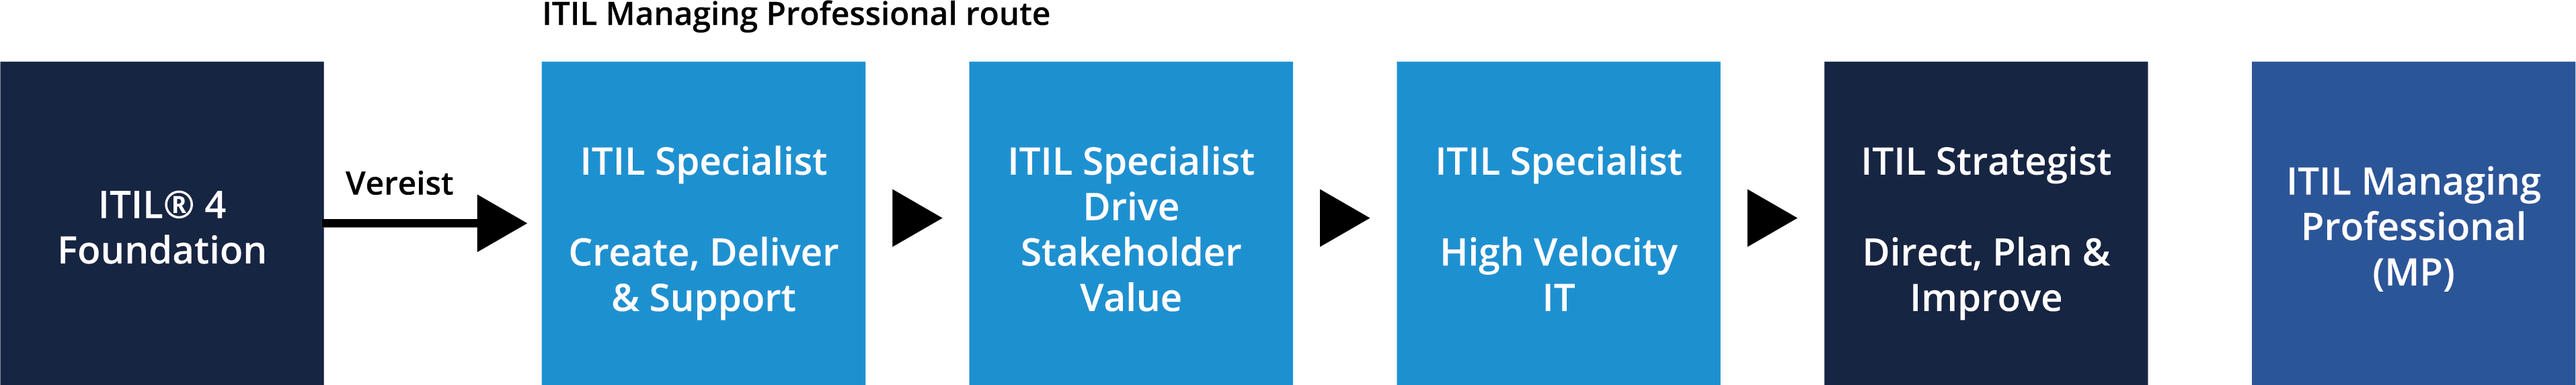 ITMG ITIL Managing Professional Route